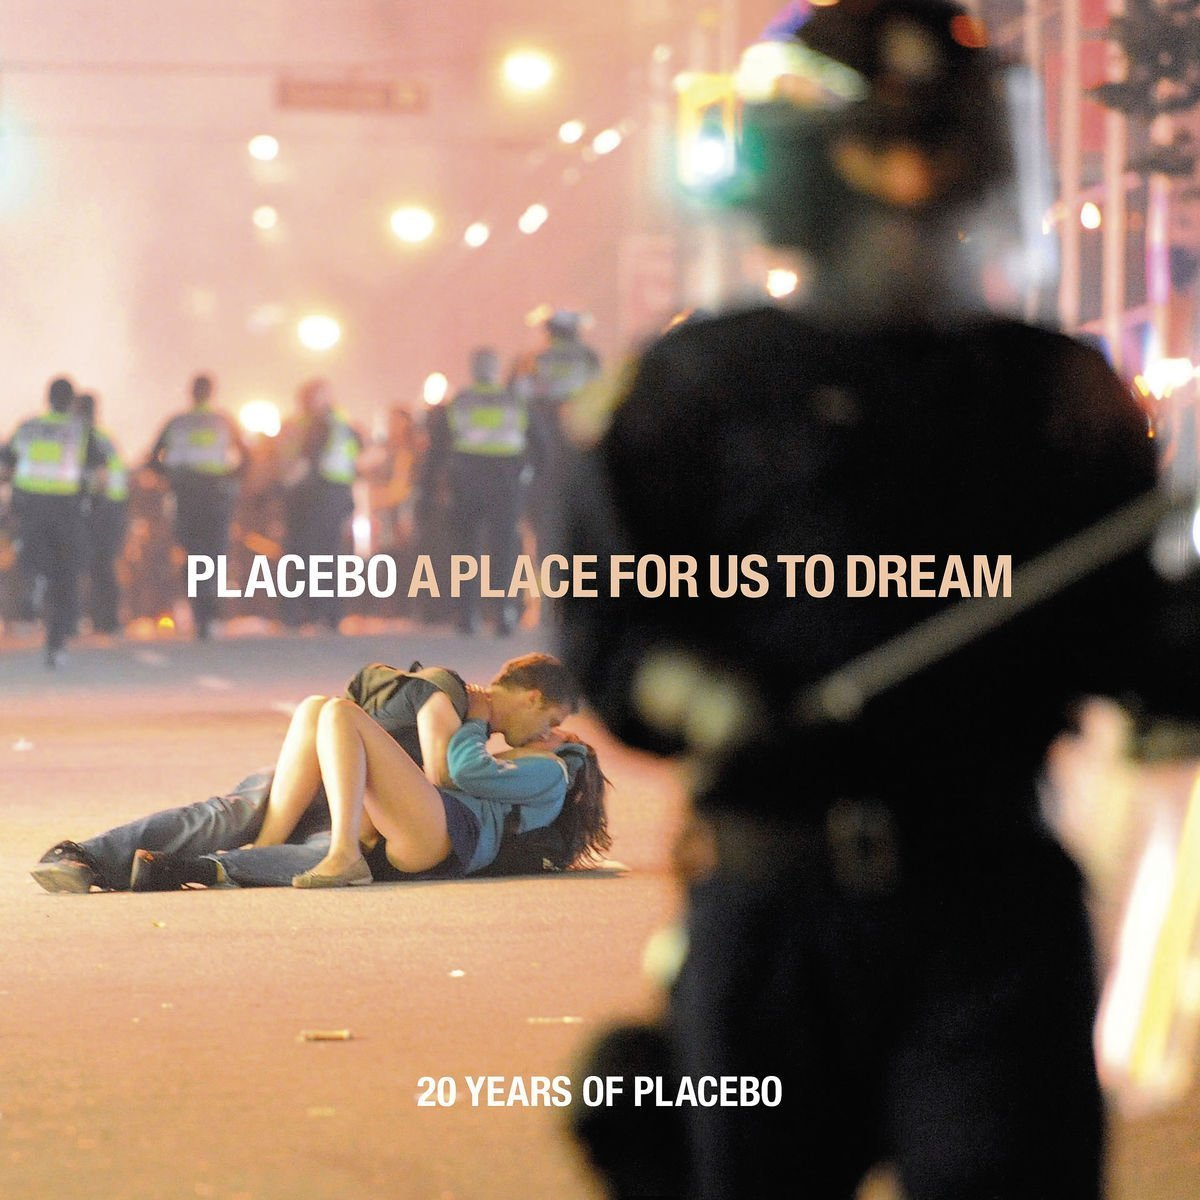 A Place For Us To Dream image